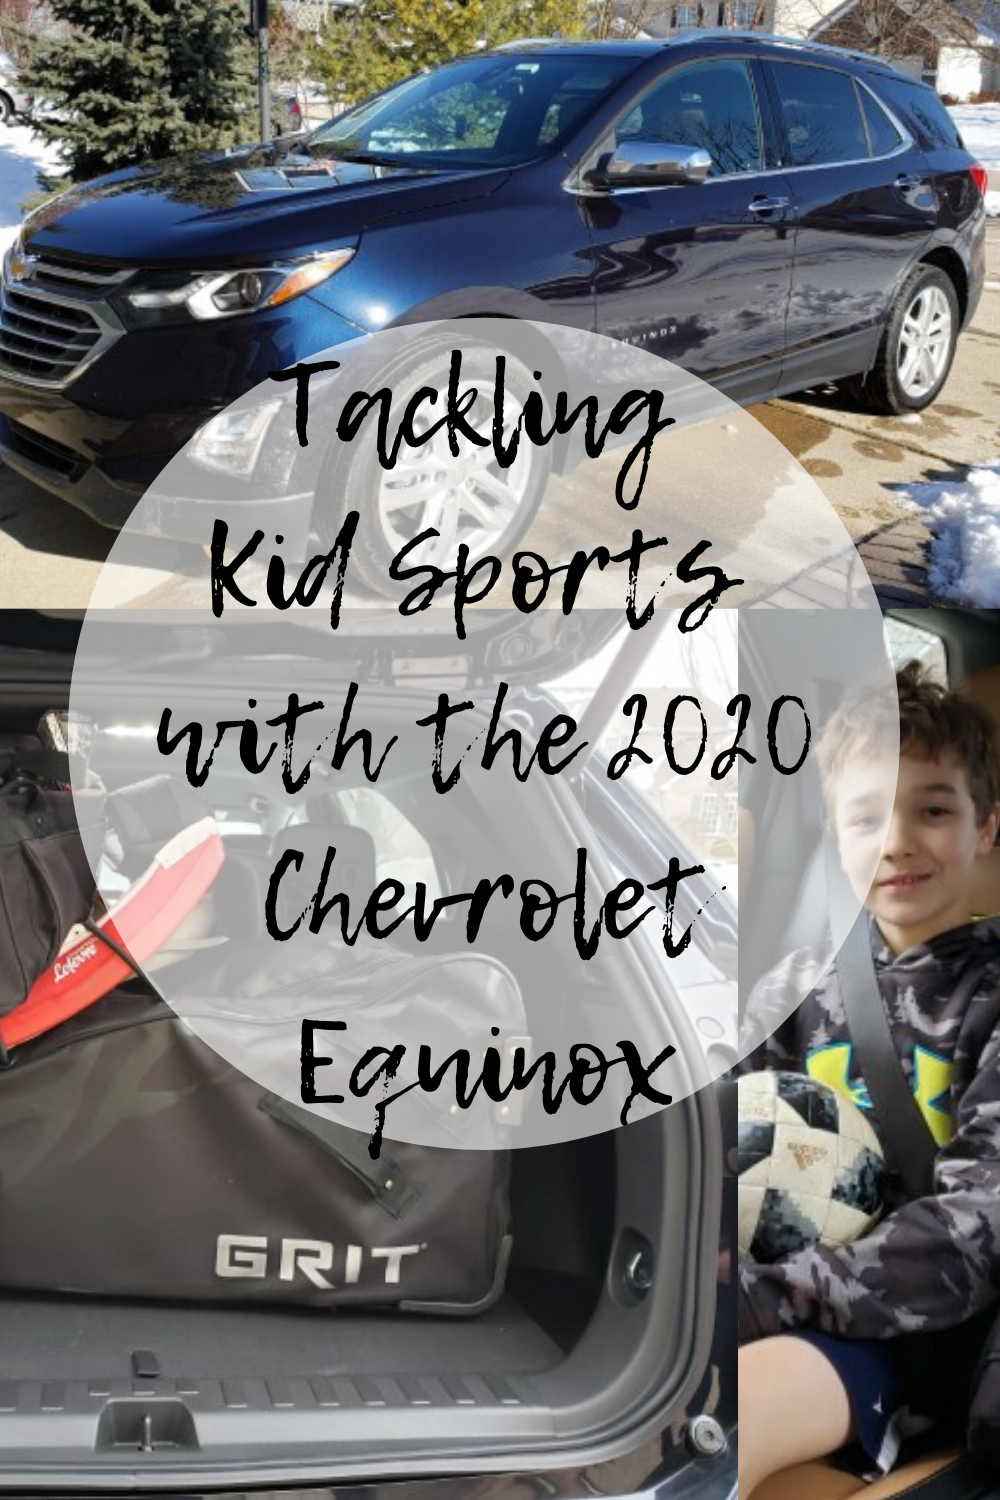 Tackling Kid Sports with the 2020 Chevrolet Equinox